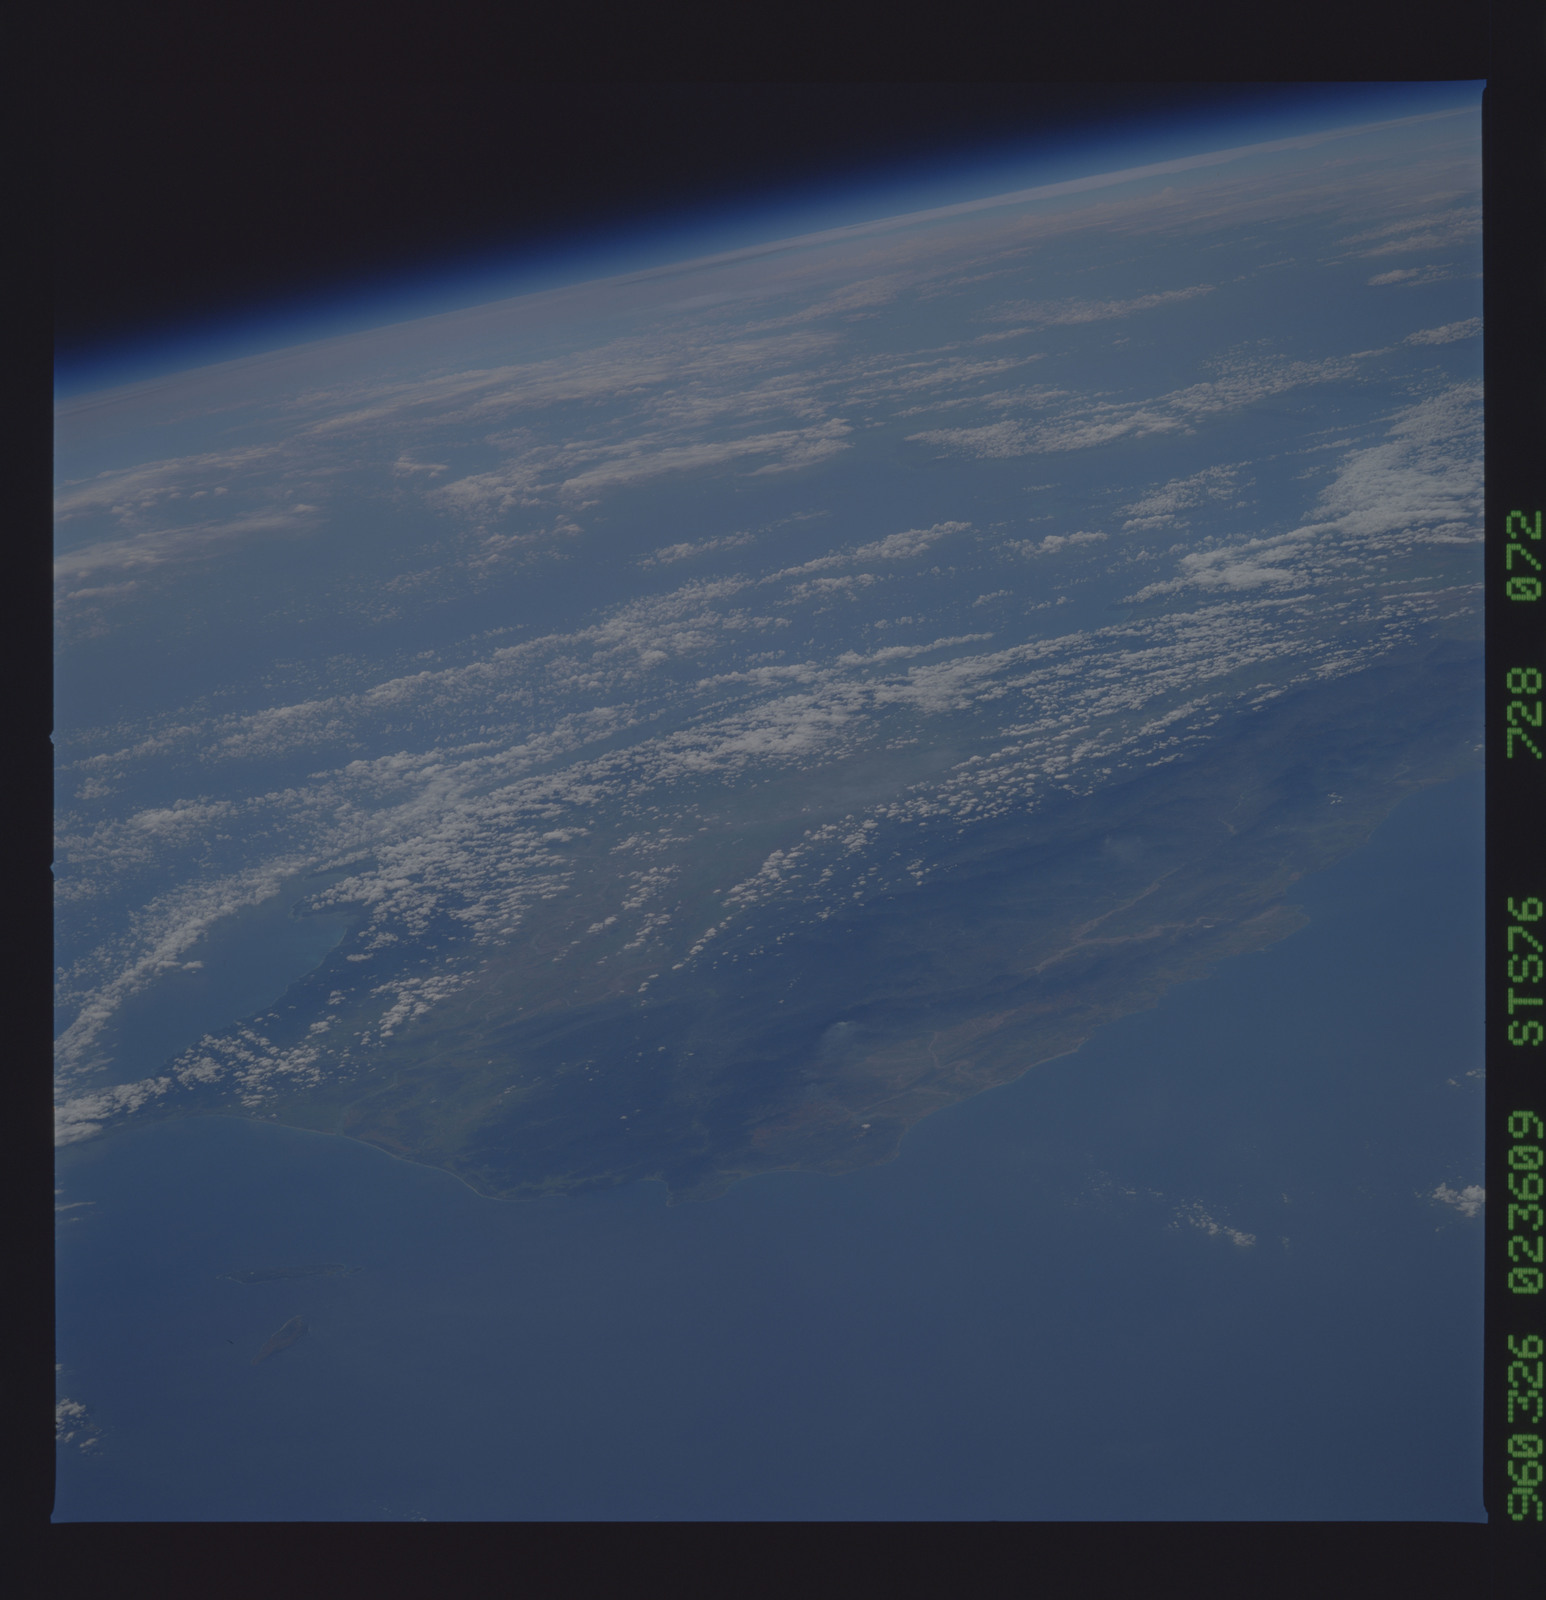 STS076-728-072 - STS-076 - Earth observations taken from shuttle orbiter Atlantis during STS-76 mission